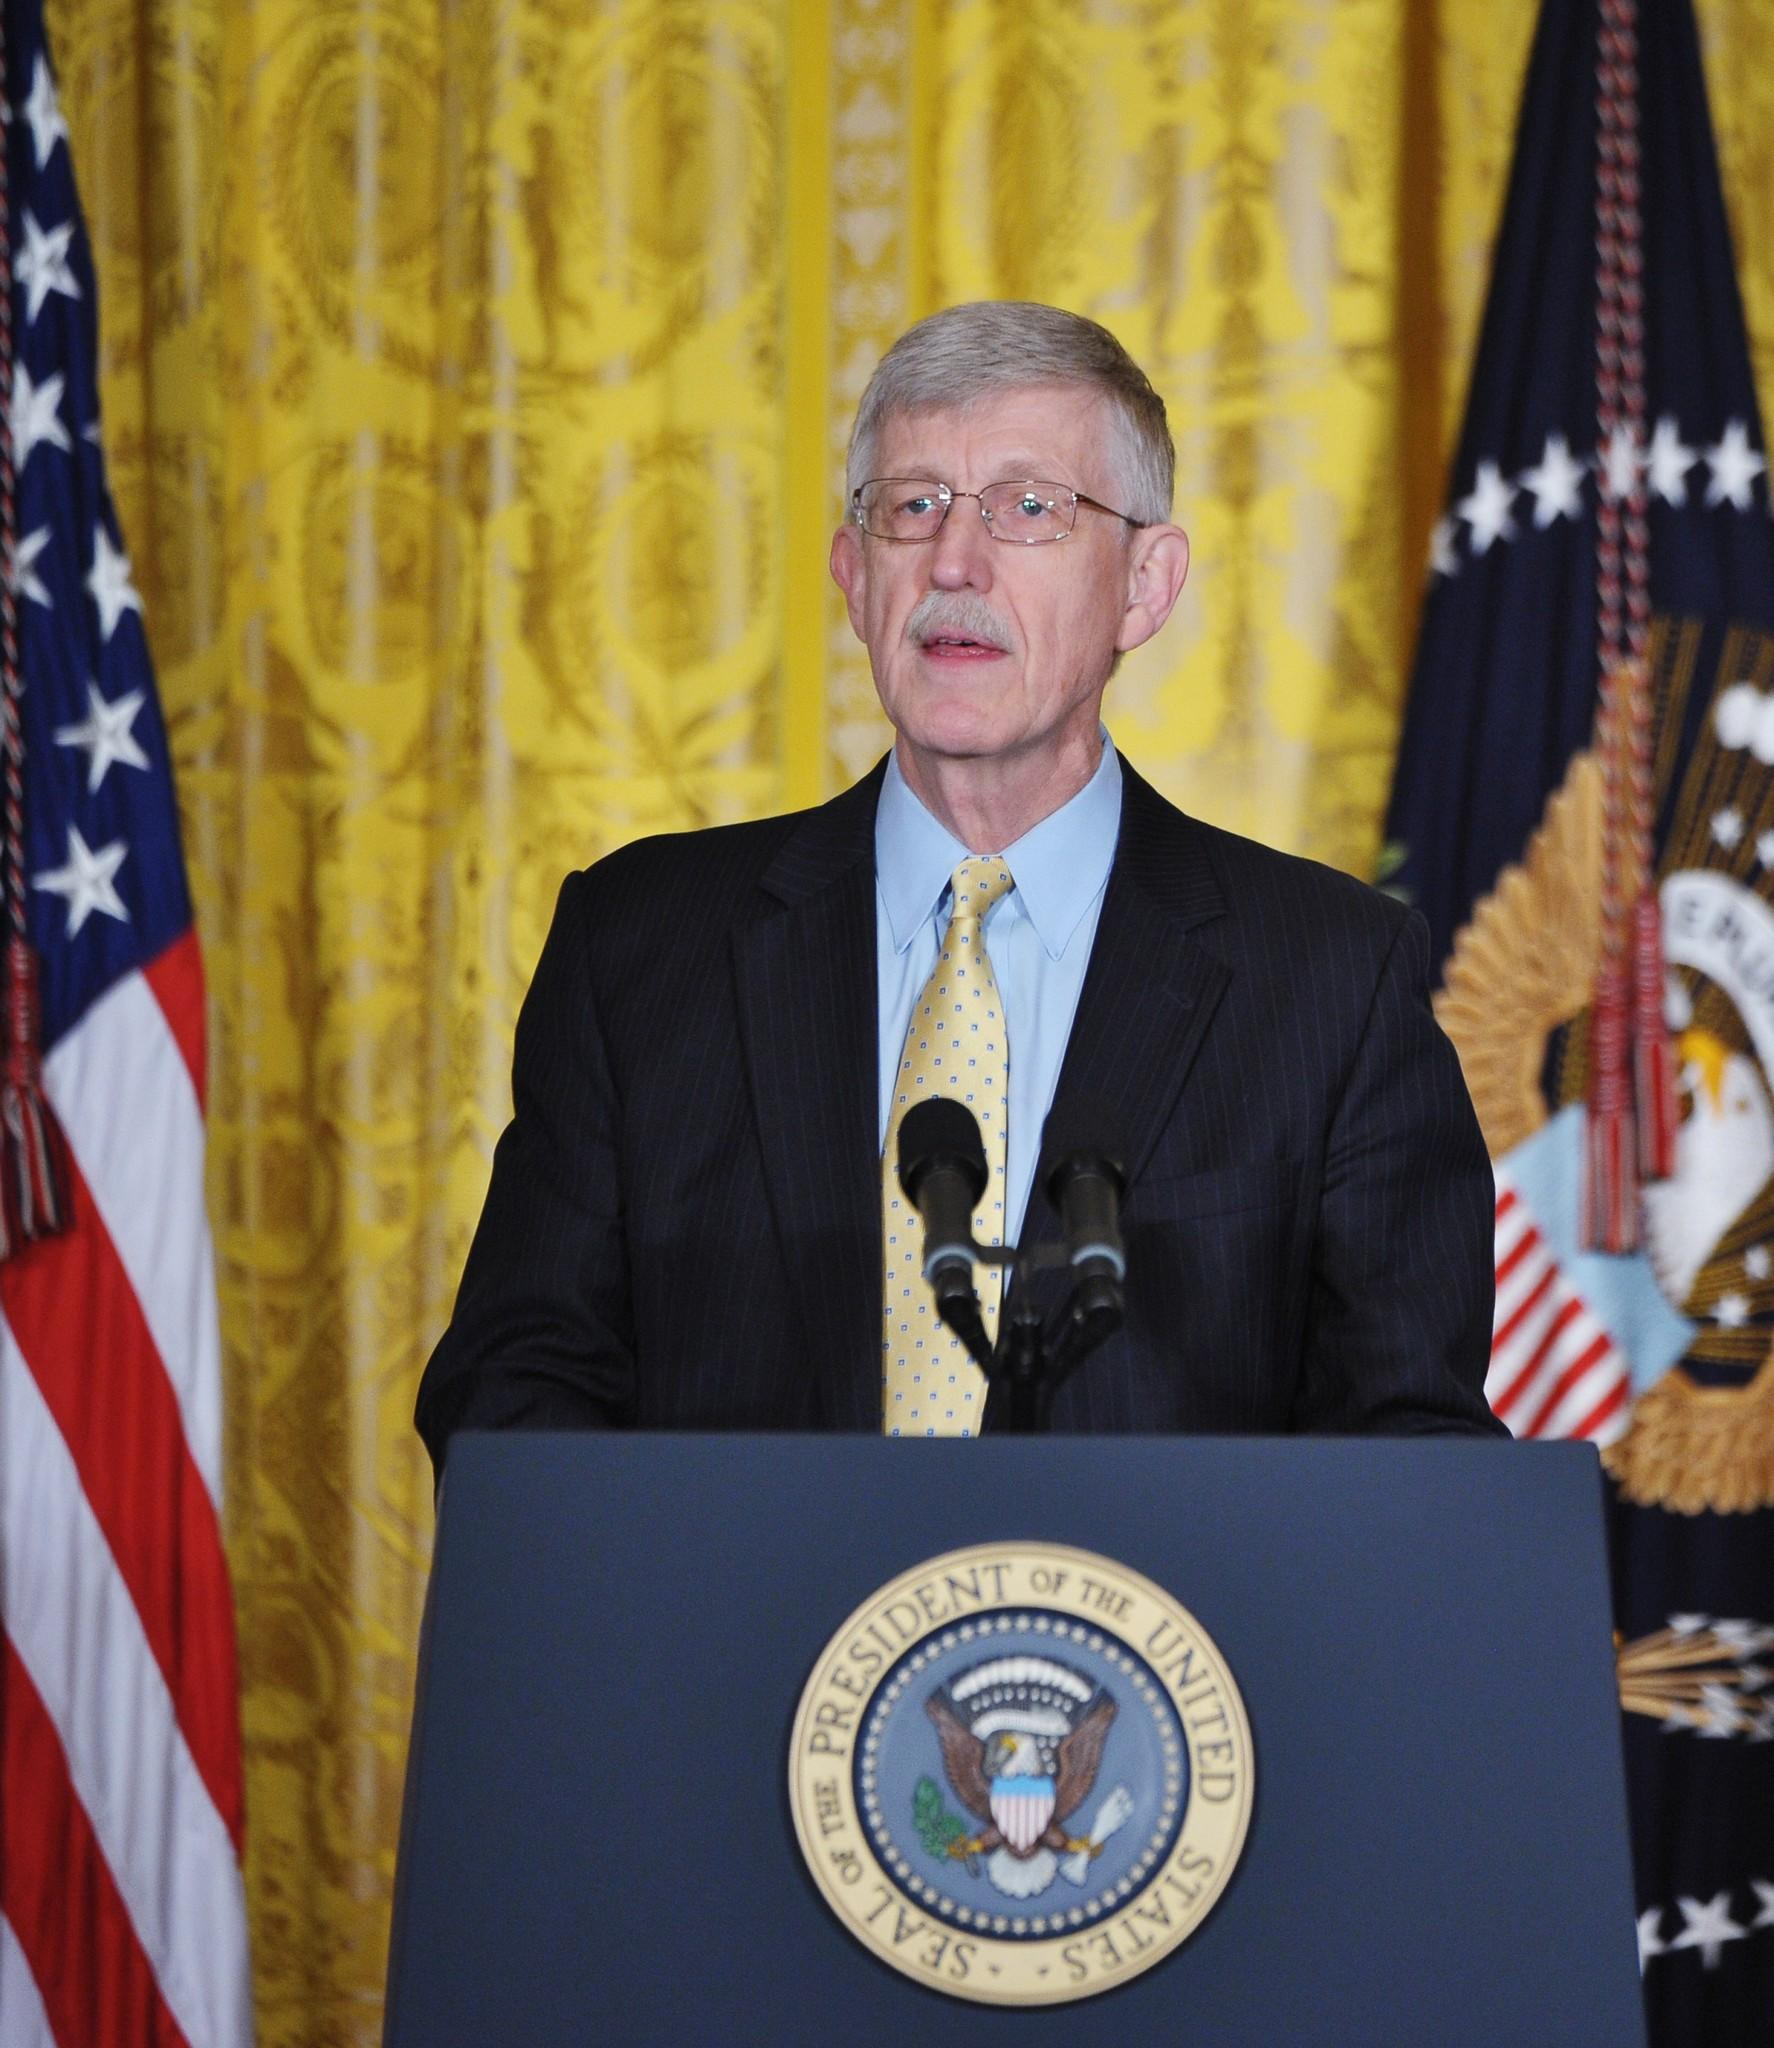 Director of the National Institutes of Health, Francis Collins introduces President Barack Obama before Obama spoke on the Brain Research through Advancing Innovative Neurotechnologies (BRAIN) Initiative on April 2, 2013 in the East Room of the White House in Washington, DC.